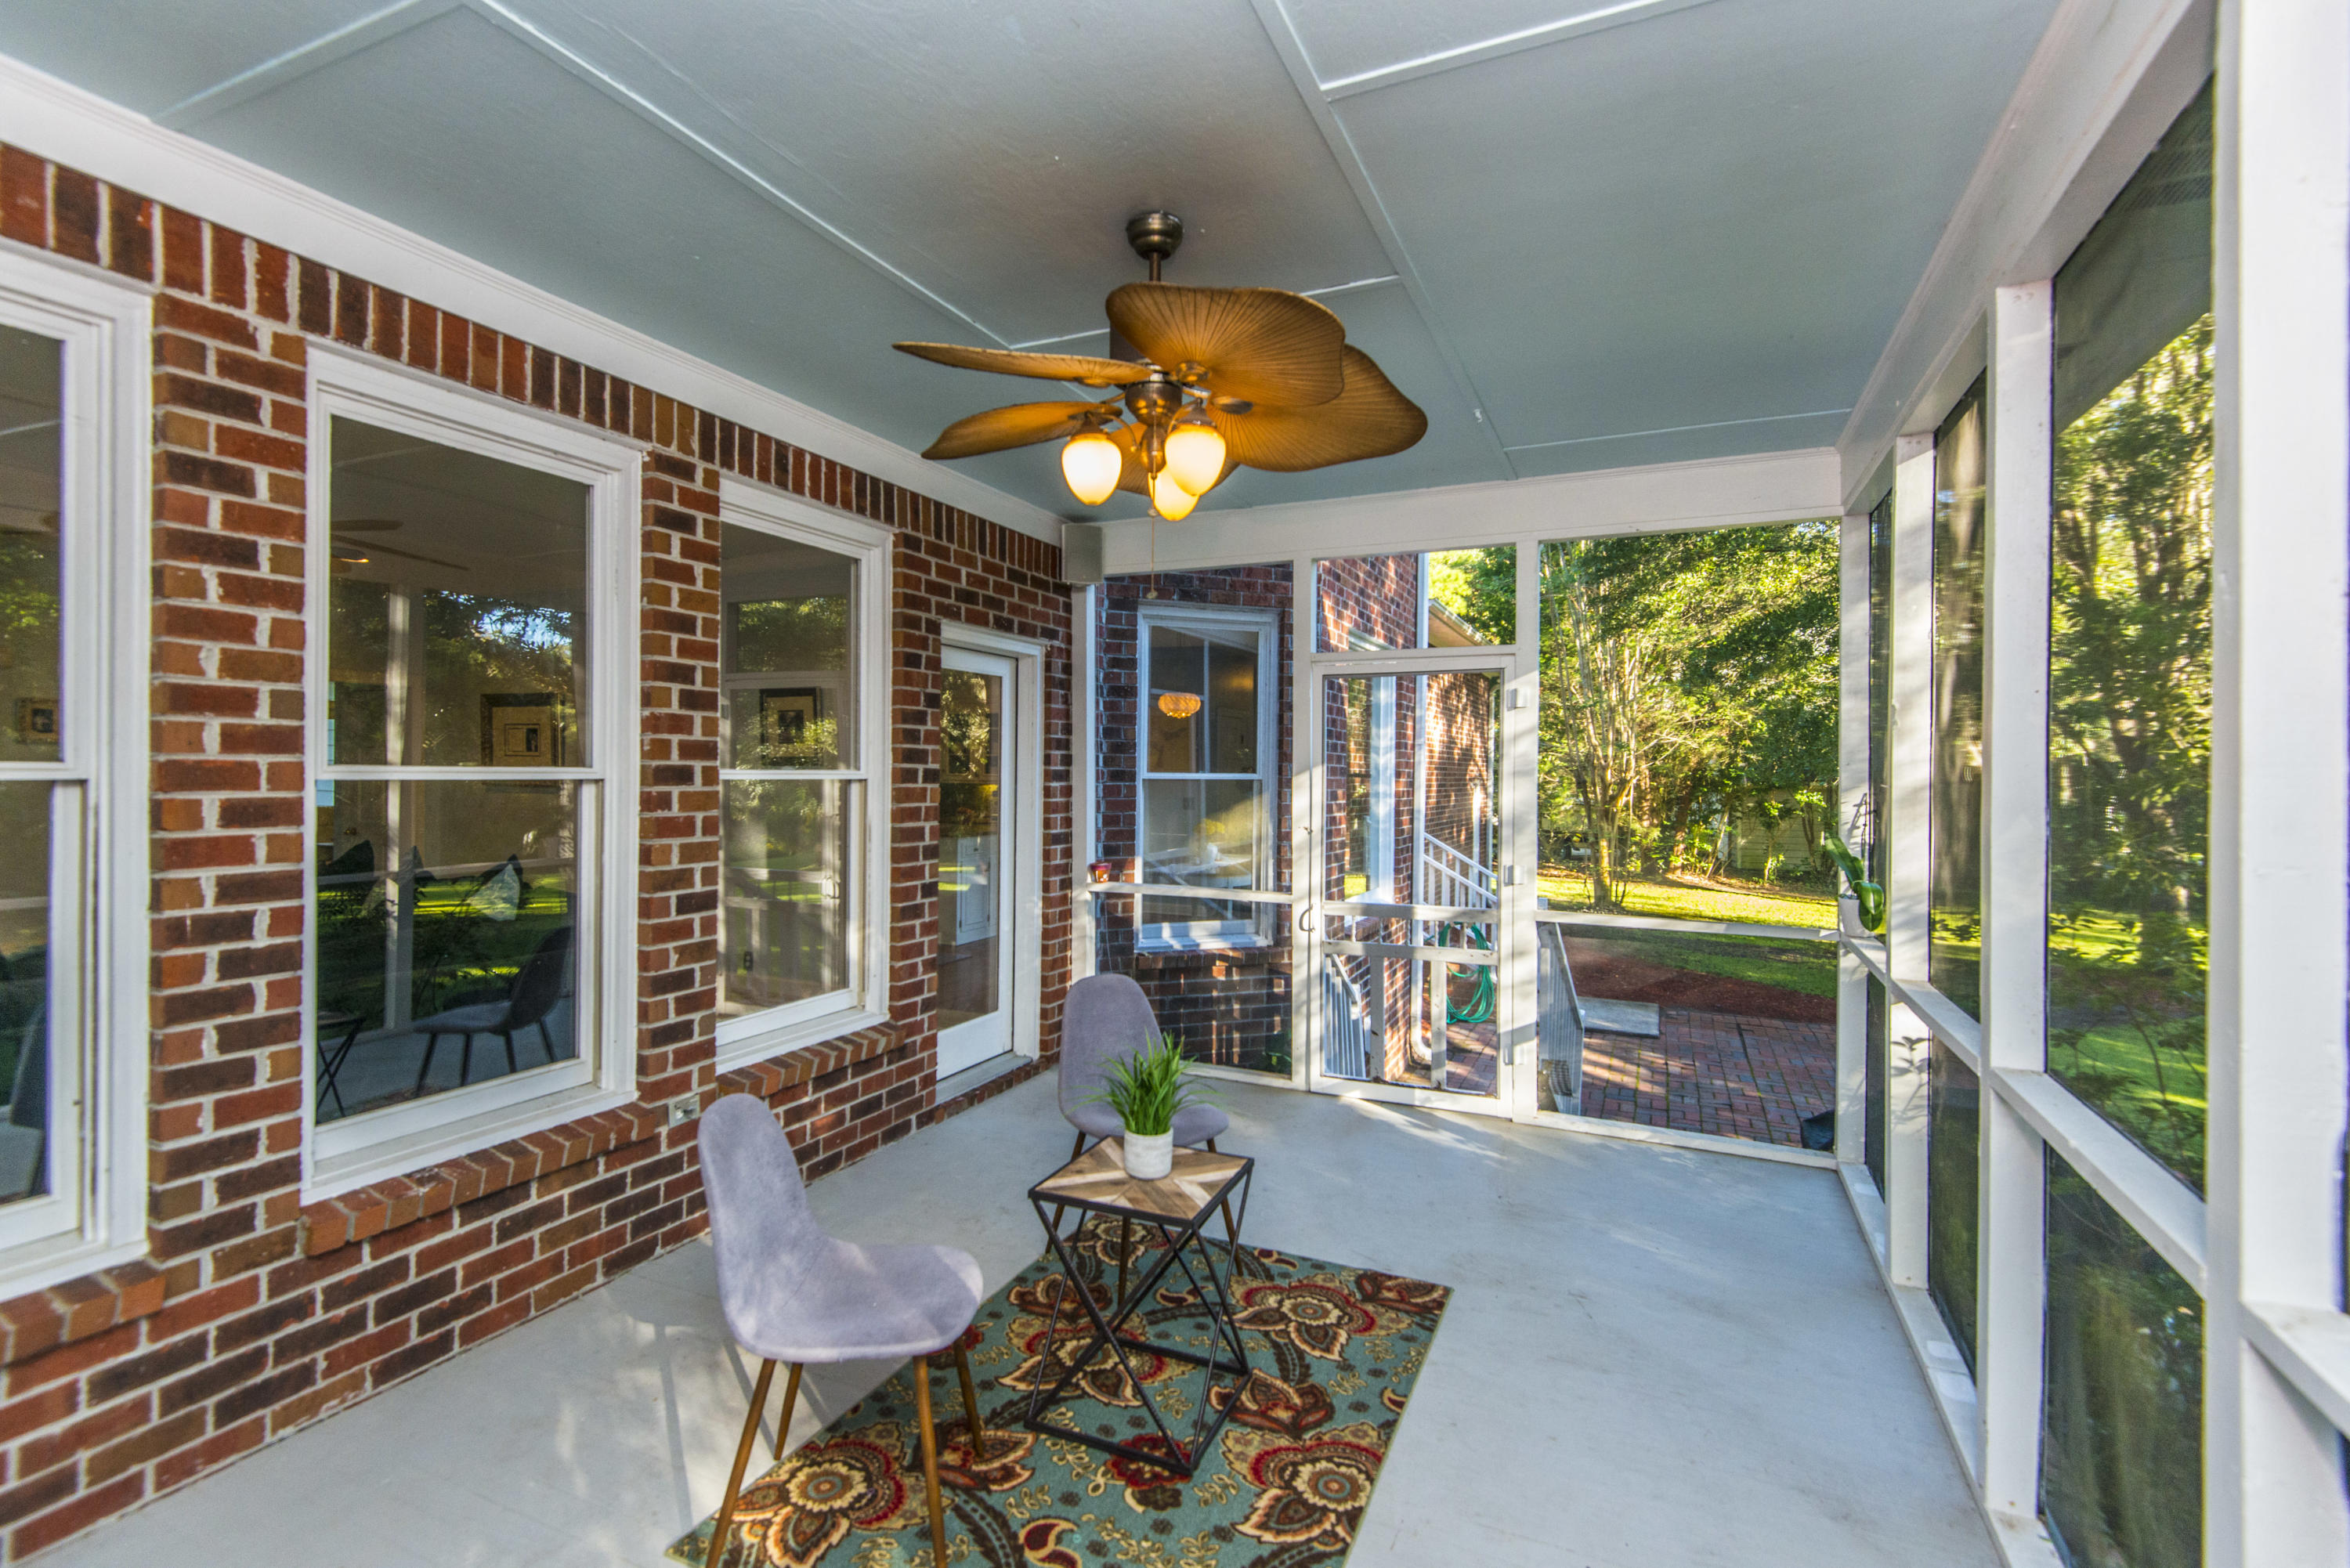 Maclaura Hall Homes For Sale - 3232 Hagerty, Charleston, SC - 44